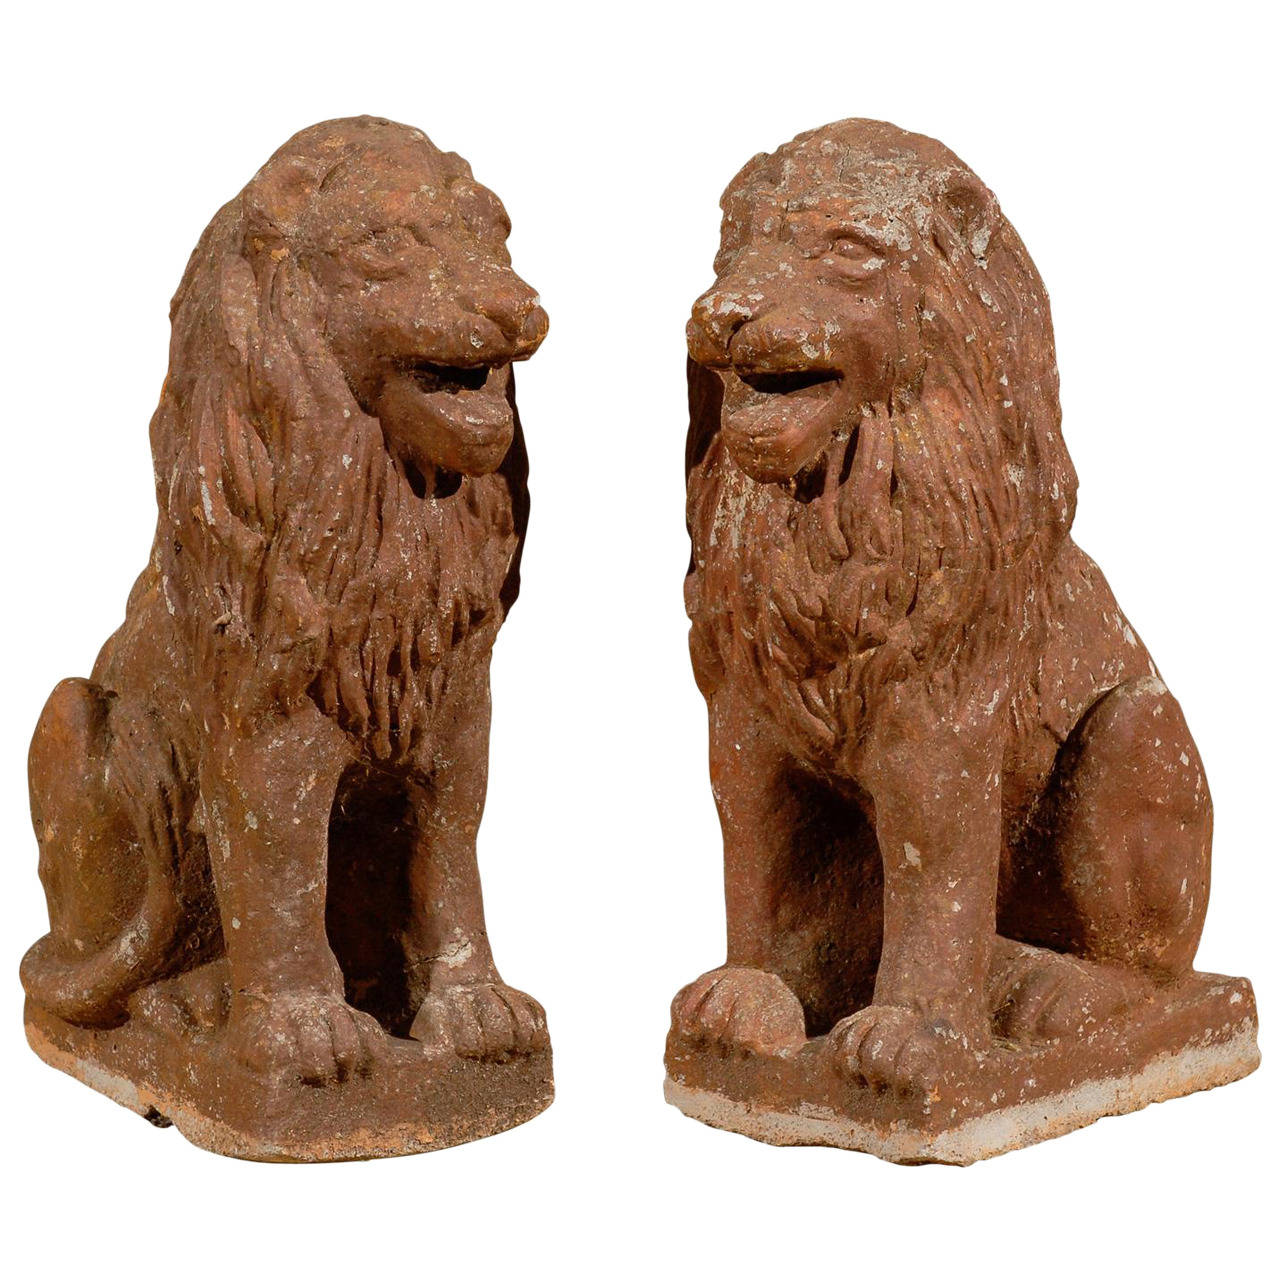 Pair of Early 20th Century Old Stone Lions from France, Circa 1910